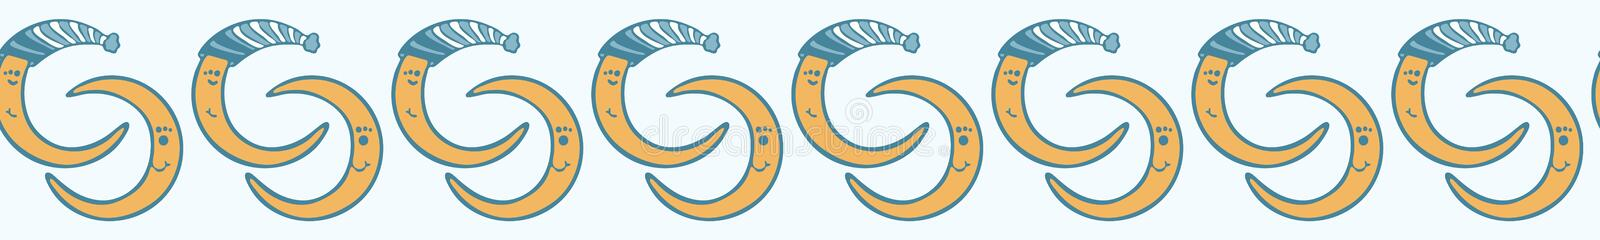 Cute cartoon moon with hat and happy smiling face stock illustration